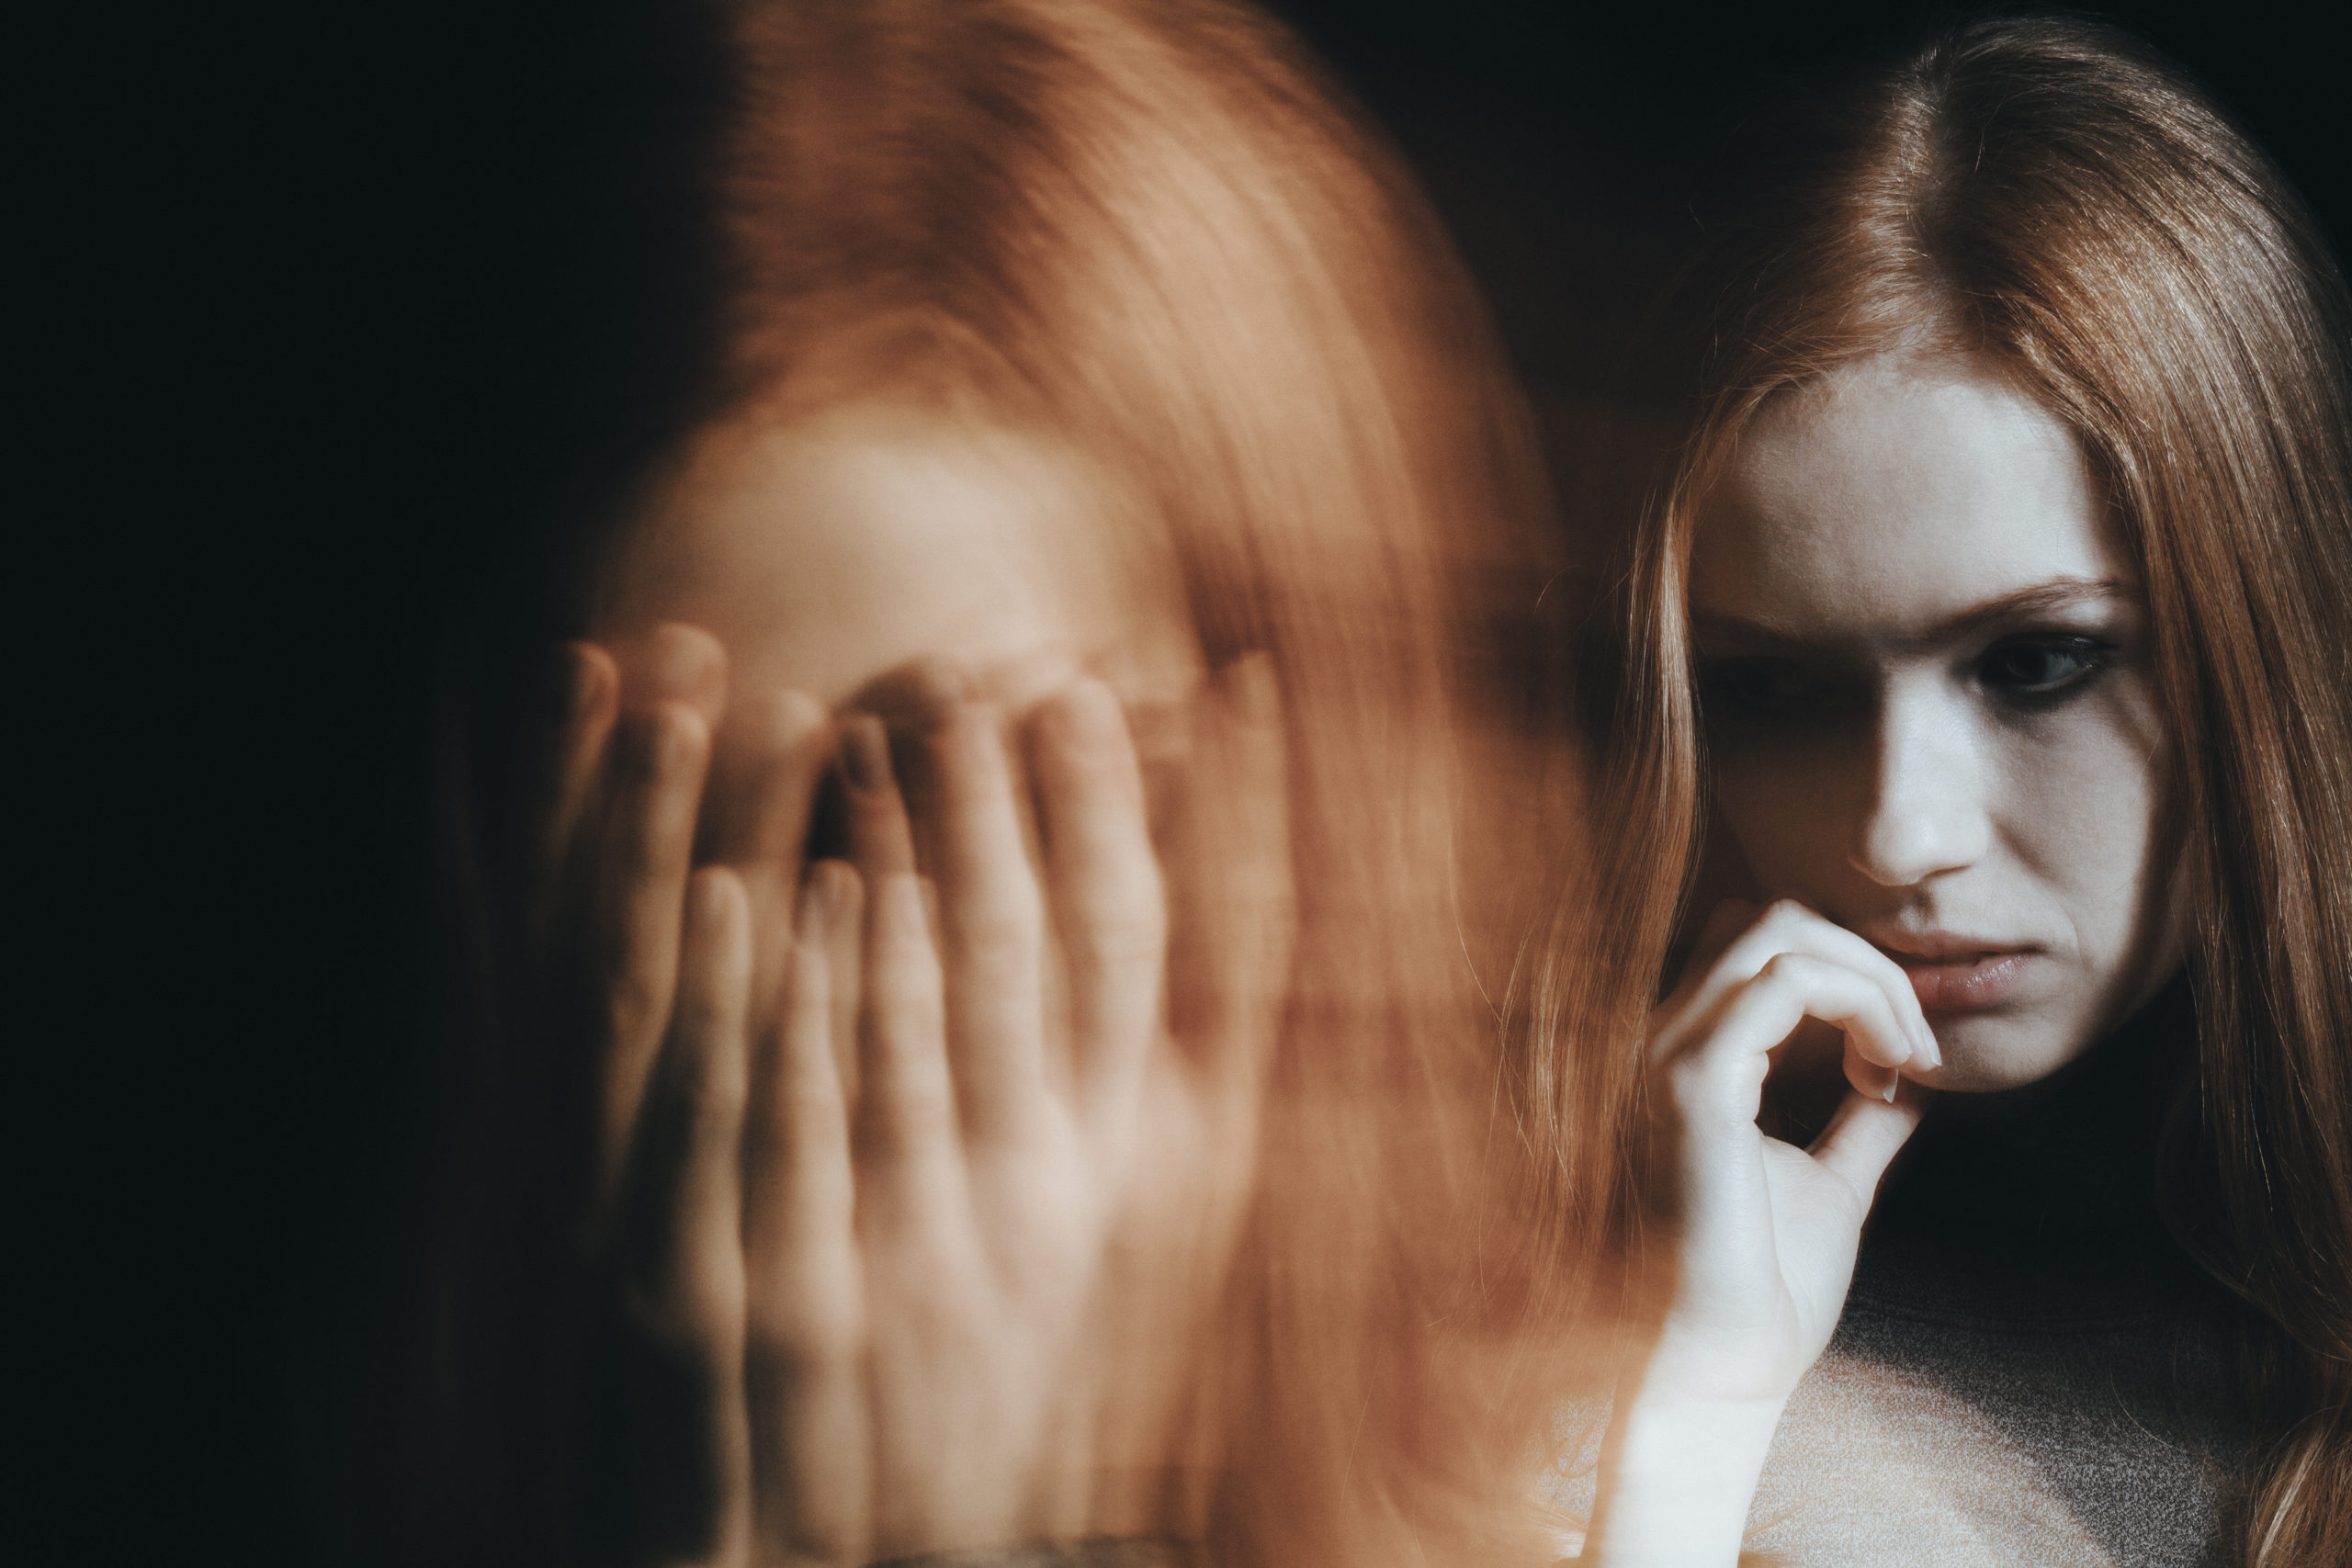 What are the 5 signs of mental illness | Massage Rx